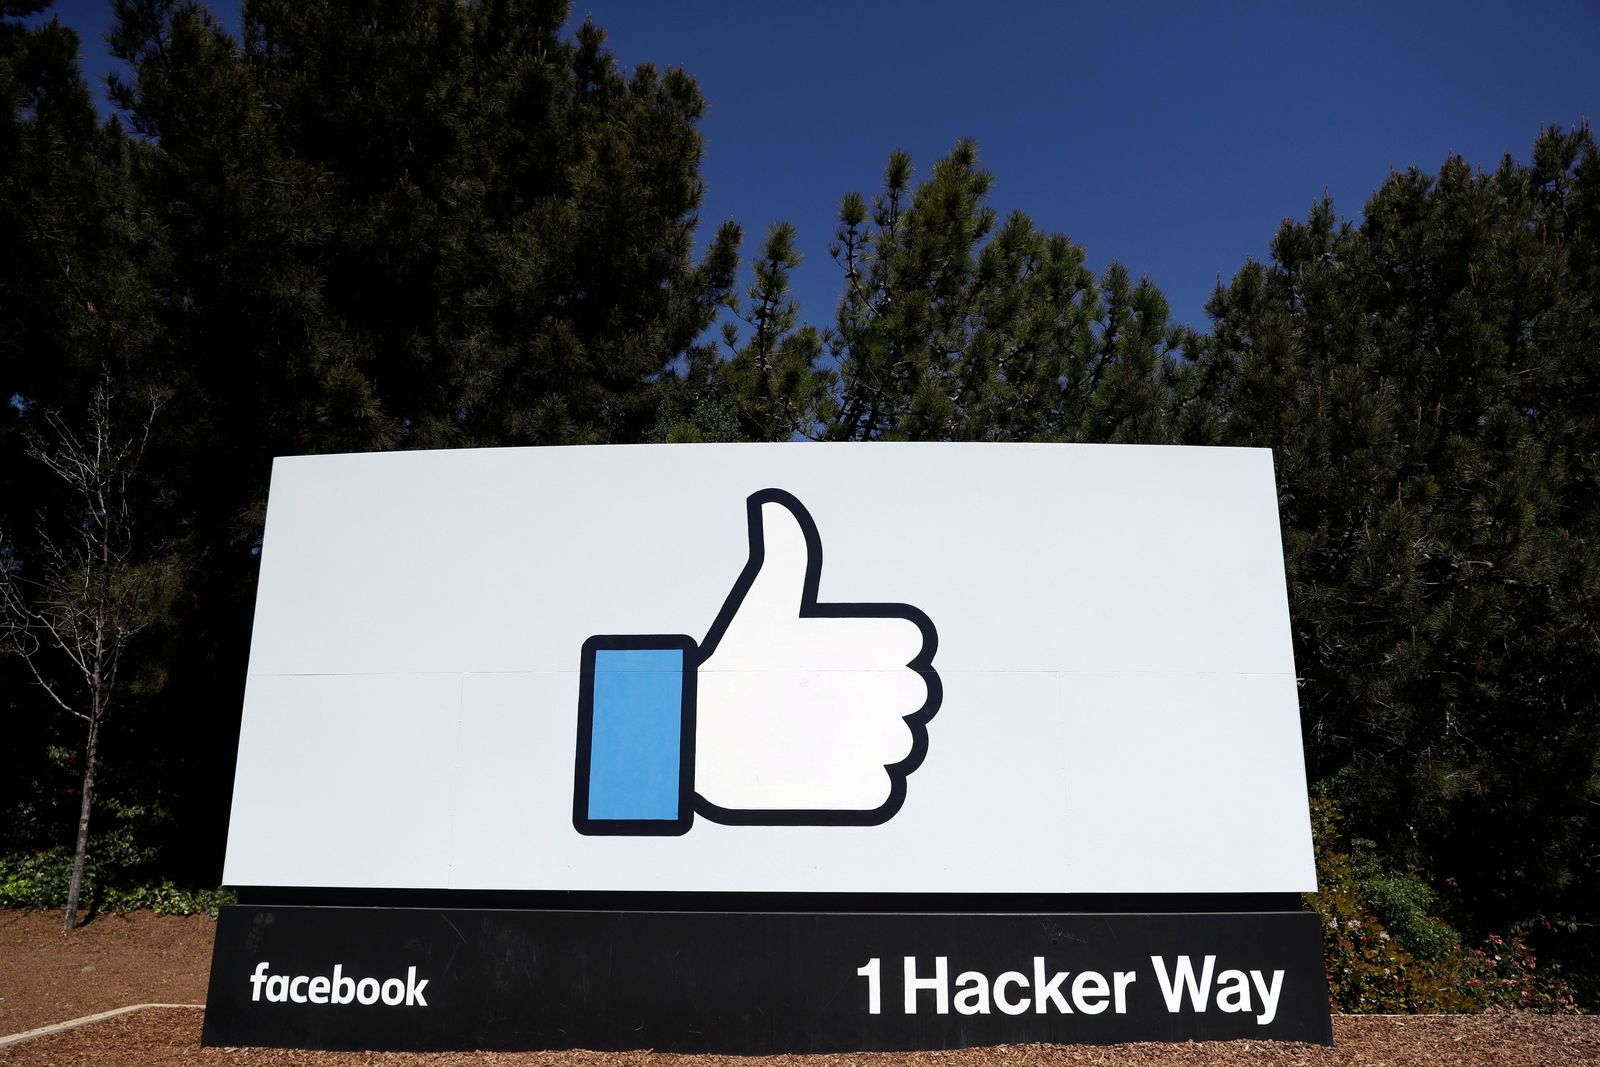 FILE- This March 28, 2018, file photo shows the Facebook logo at the company's headquarters in Menlo Park, Calif. A Wall Street Journal report says that the FTC has voted this week to approve a fine of about $5 billion for Facebook over privacy violations. The report Friday, July 12, 2019, cites an unnamed person familiar with the matter. (AP Photo/Marcio Jose Sanchez, File)